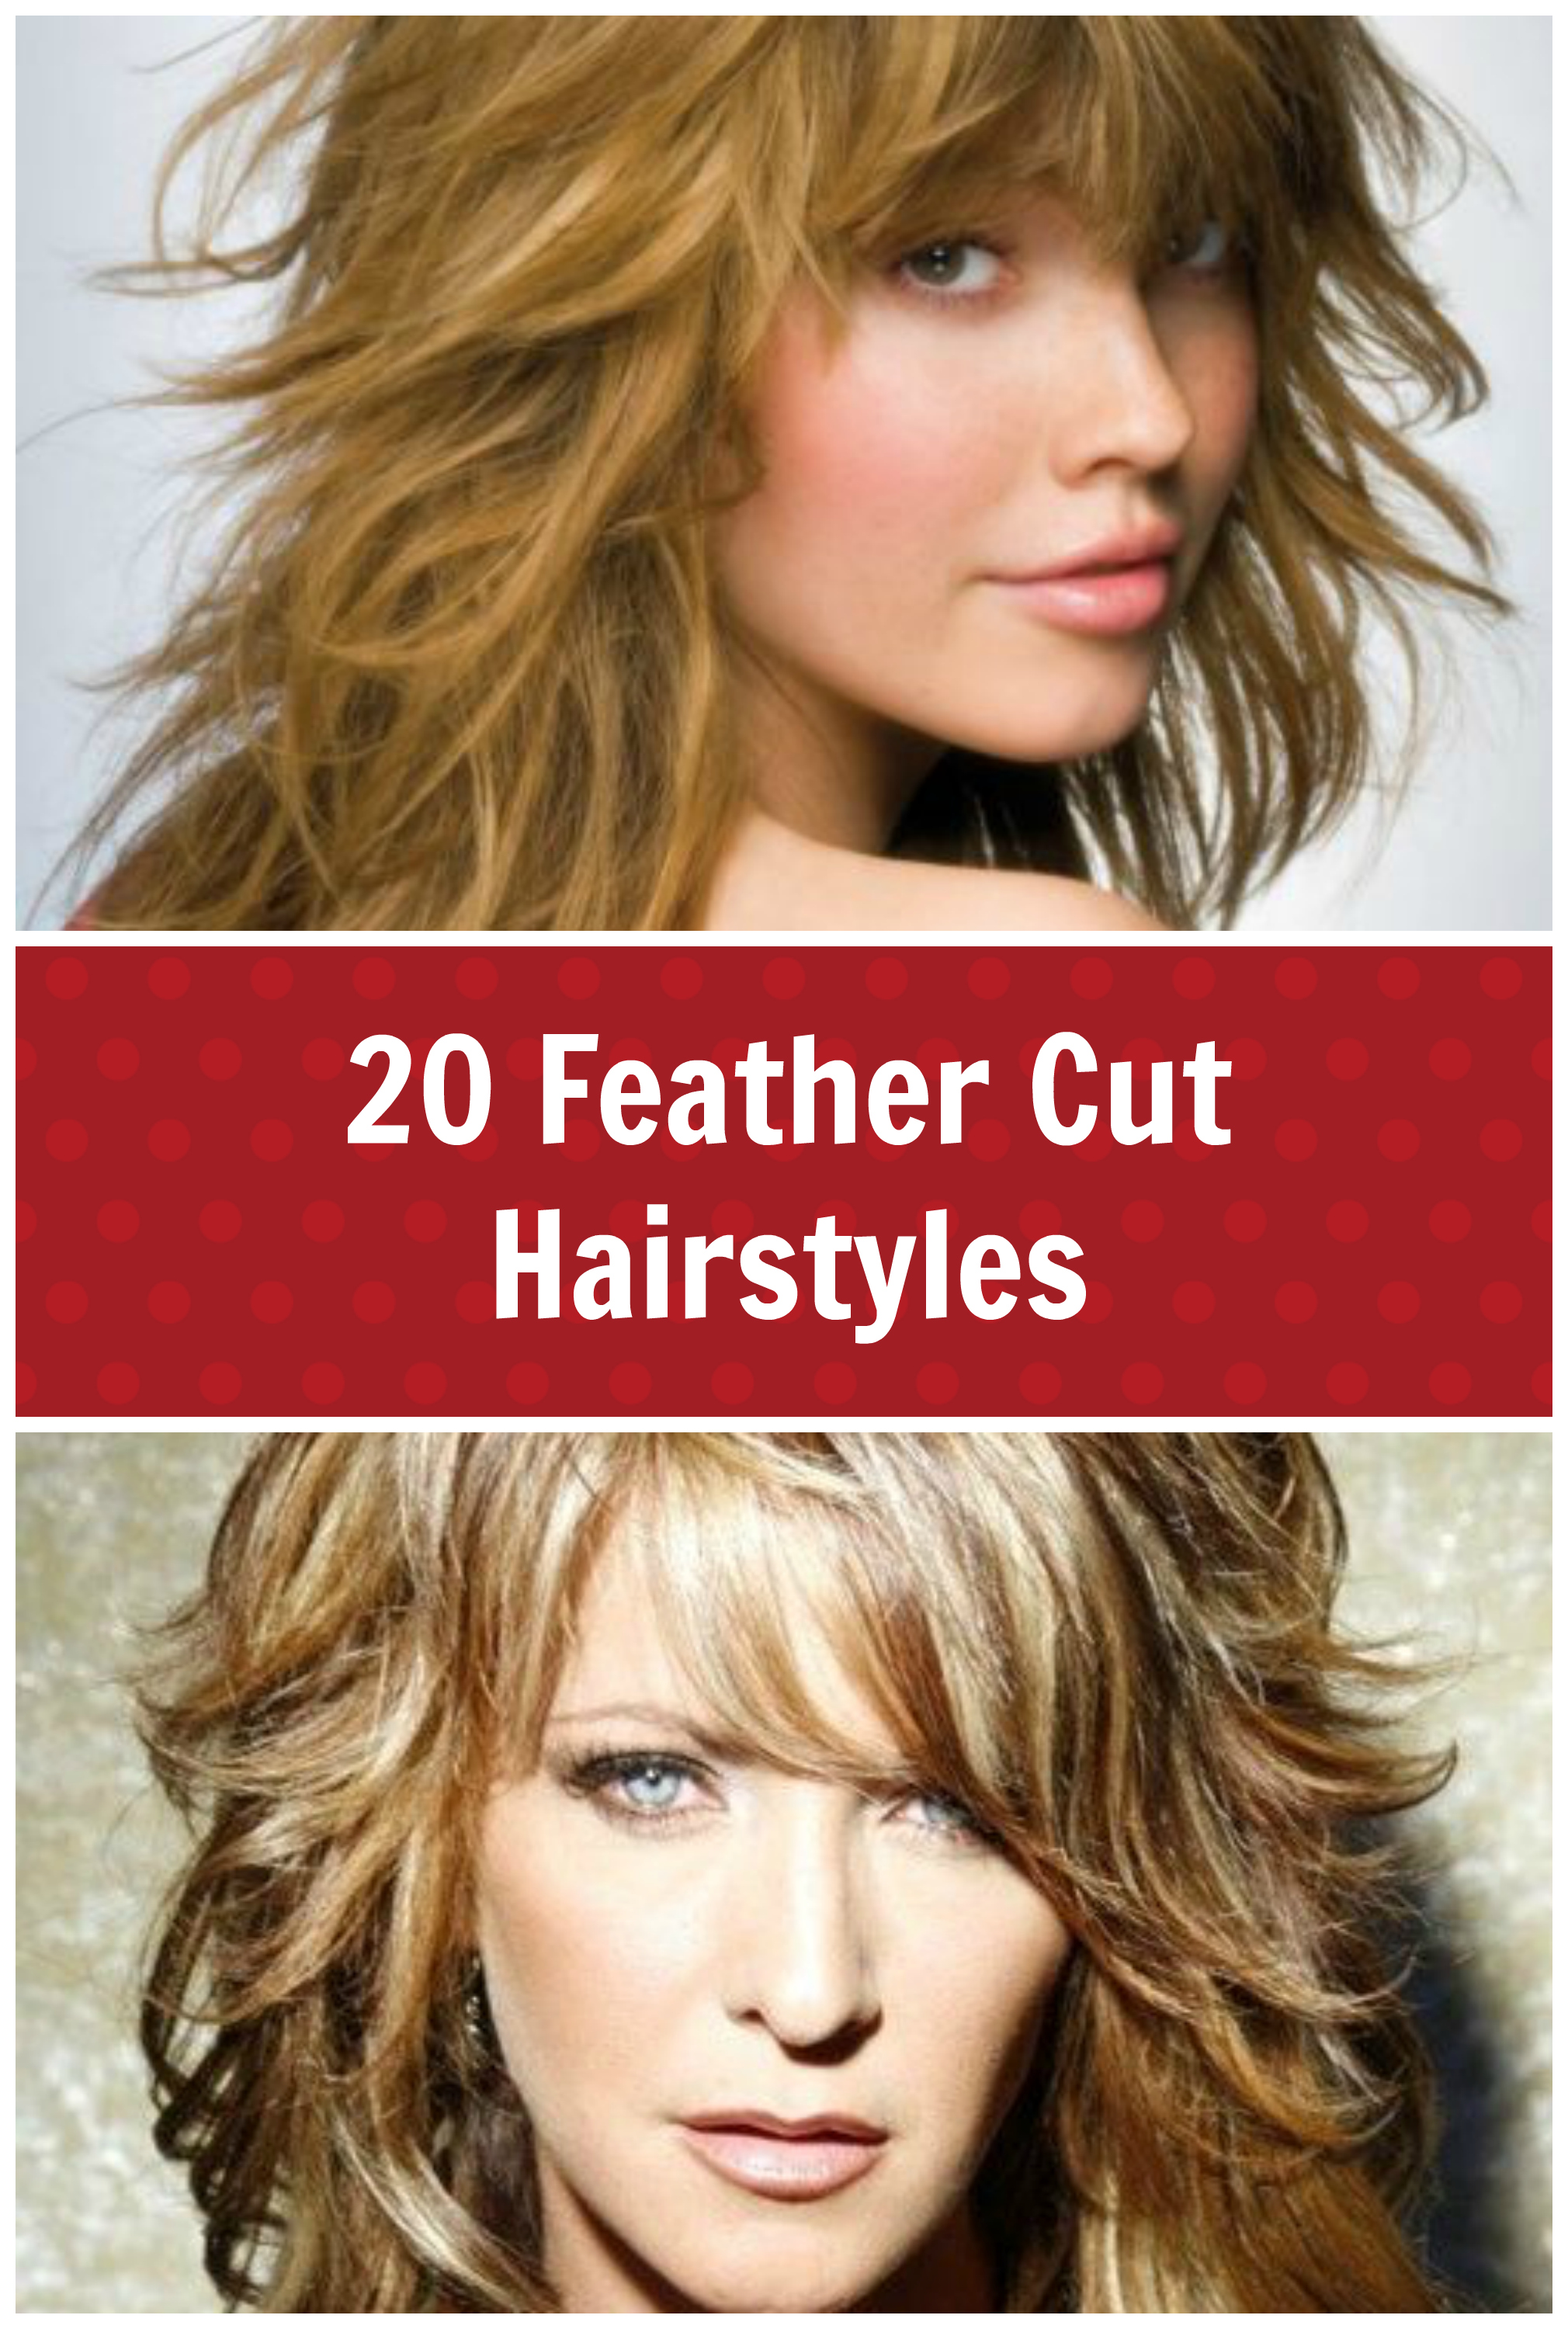 20 Feather Cut Hairstyles For Long Medium And Short Hair Di Candia Fashion